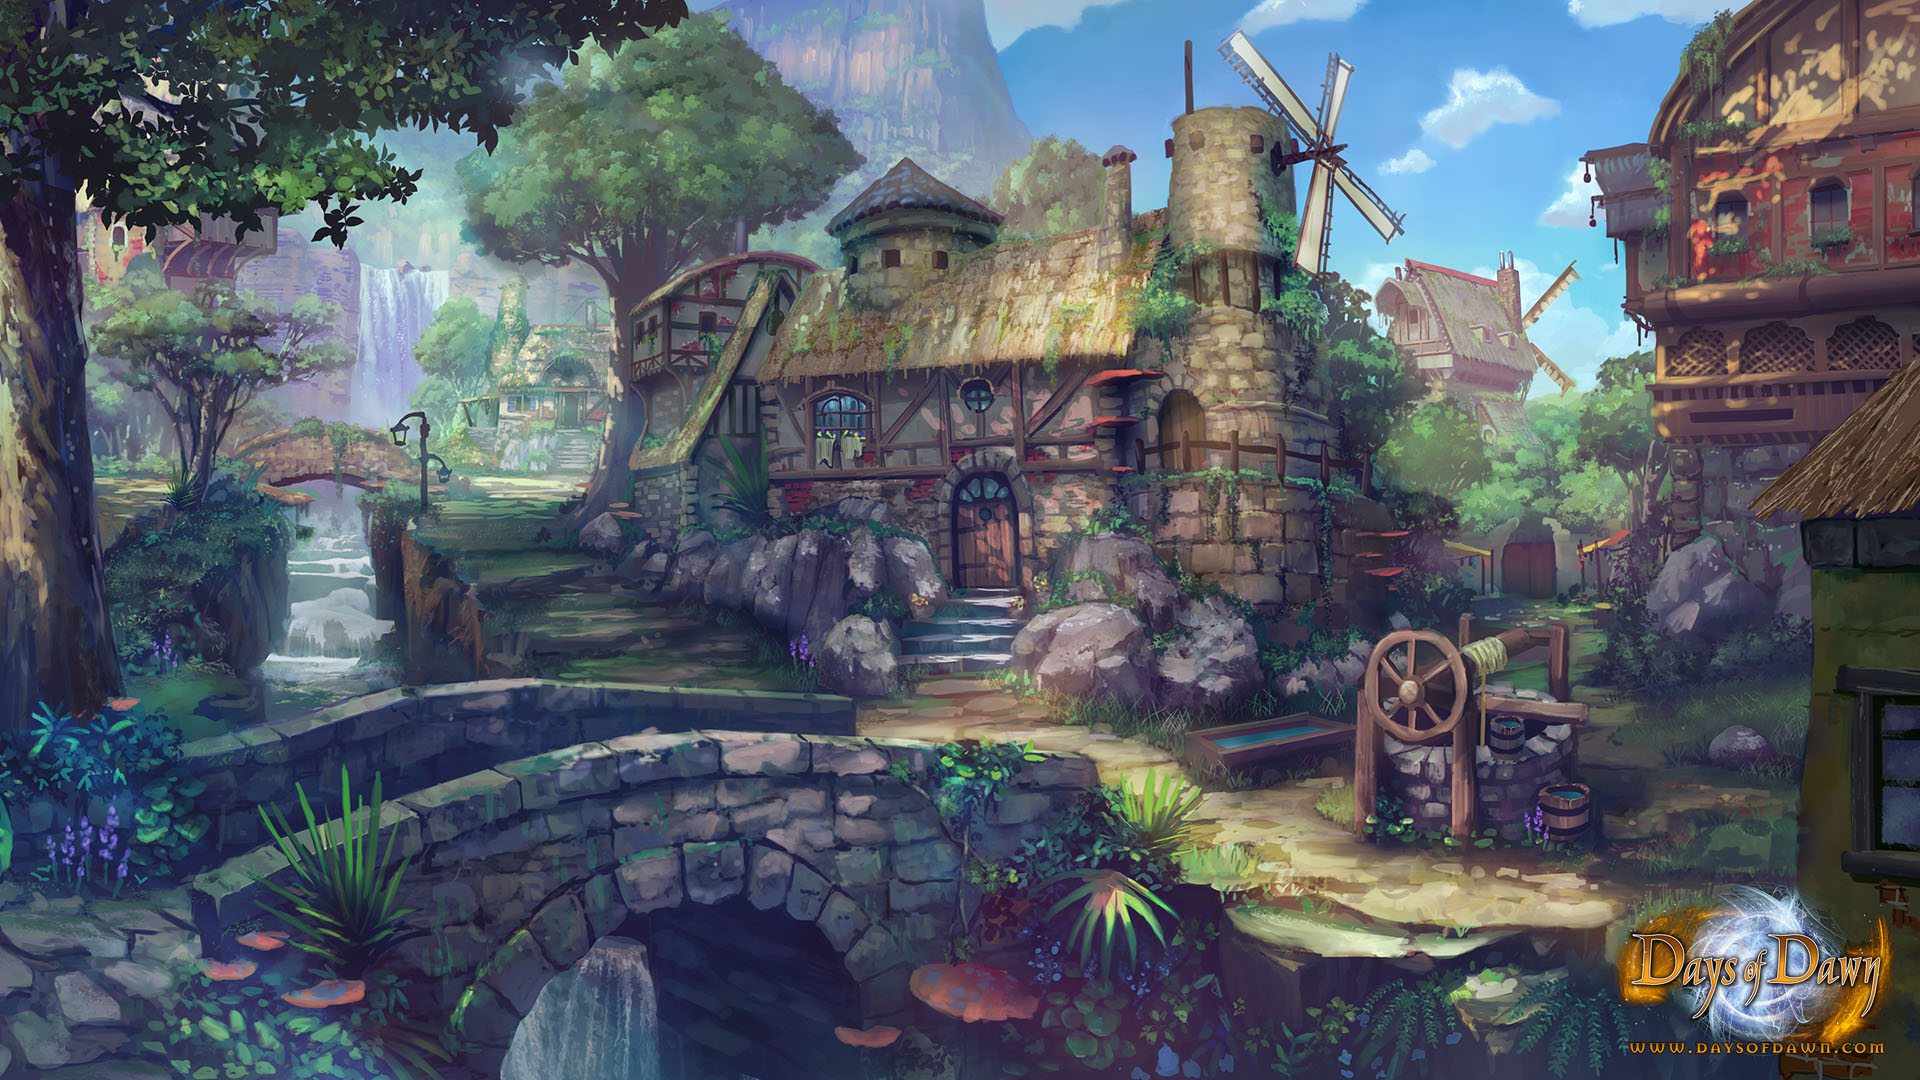 Town concept art for days of dawn image indie db - Art village wallpaper ...